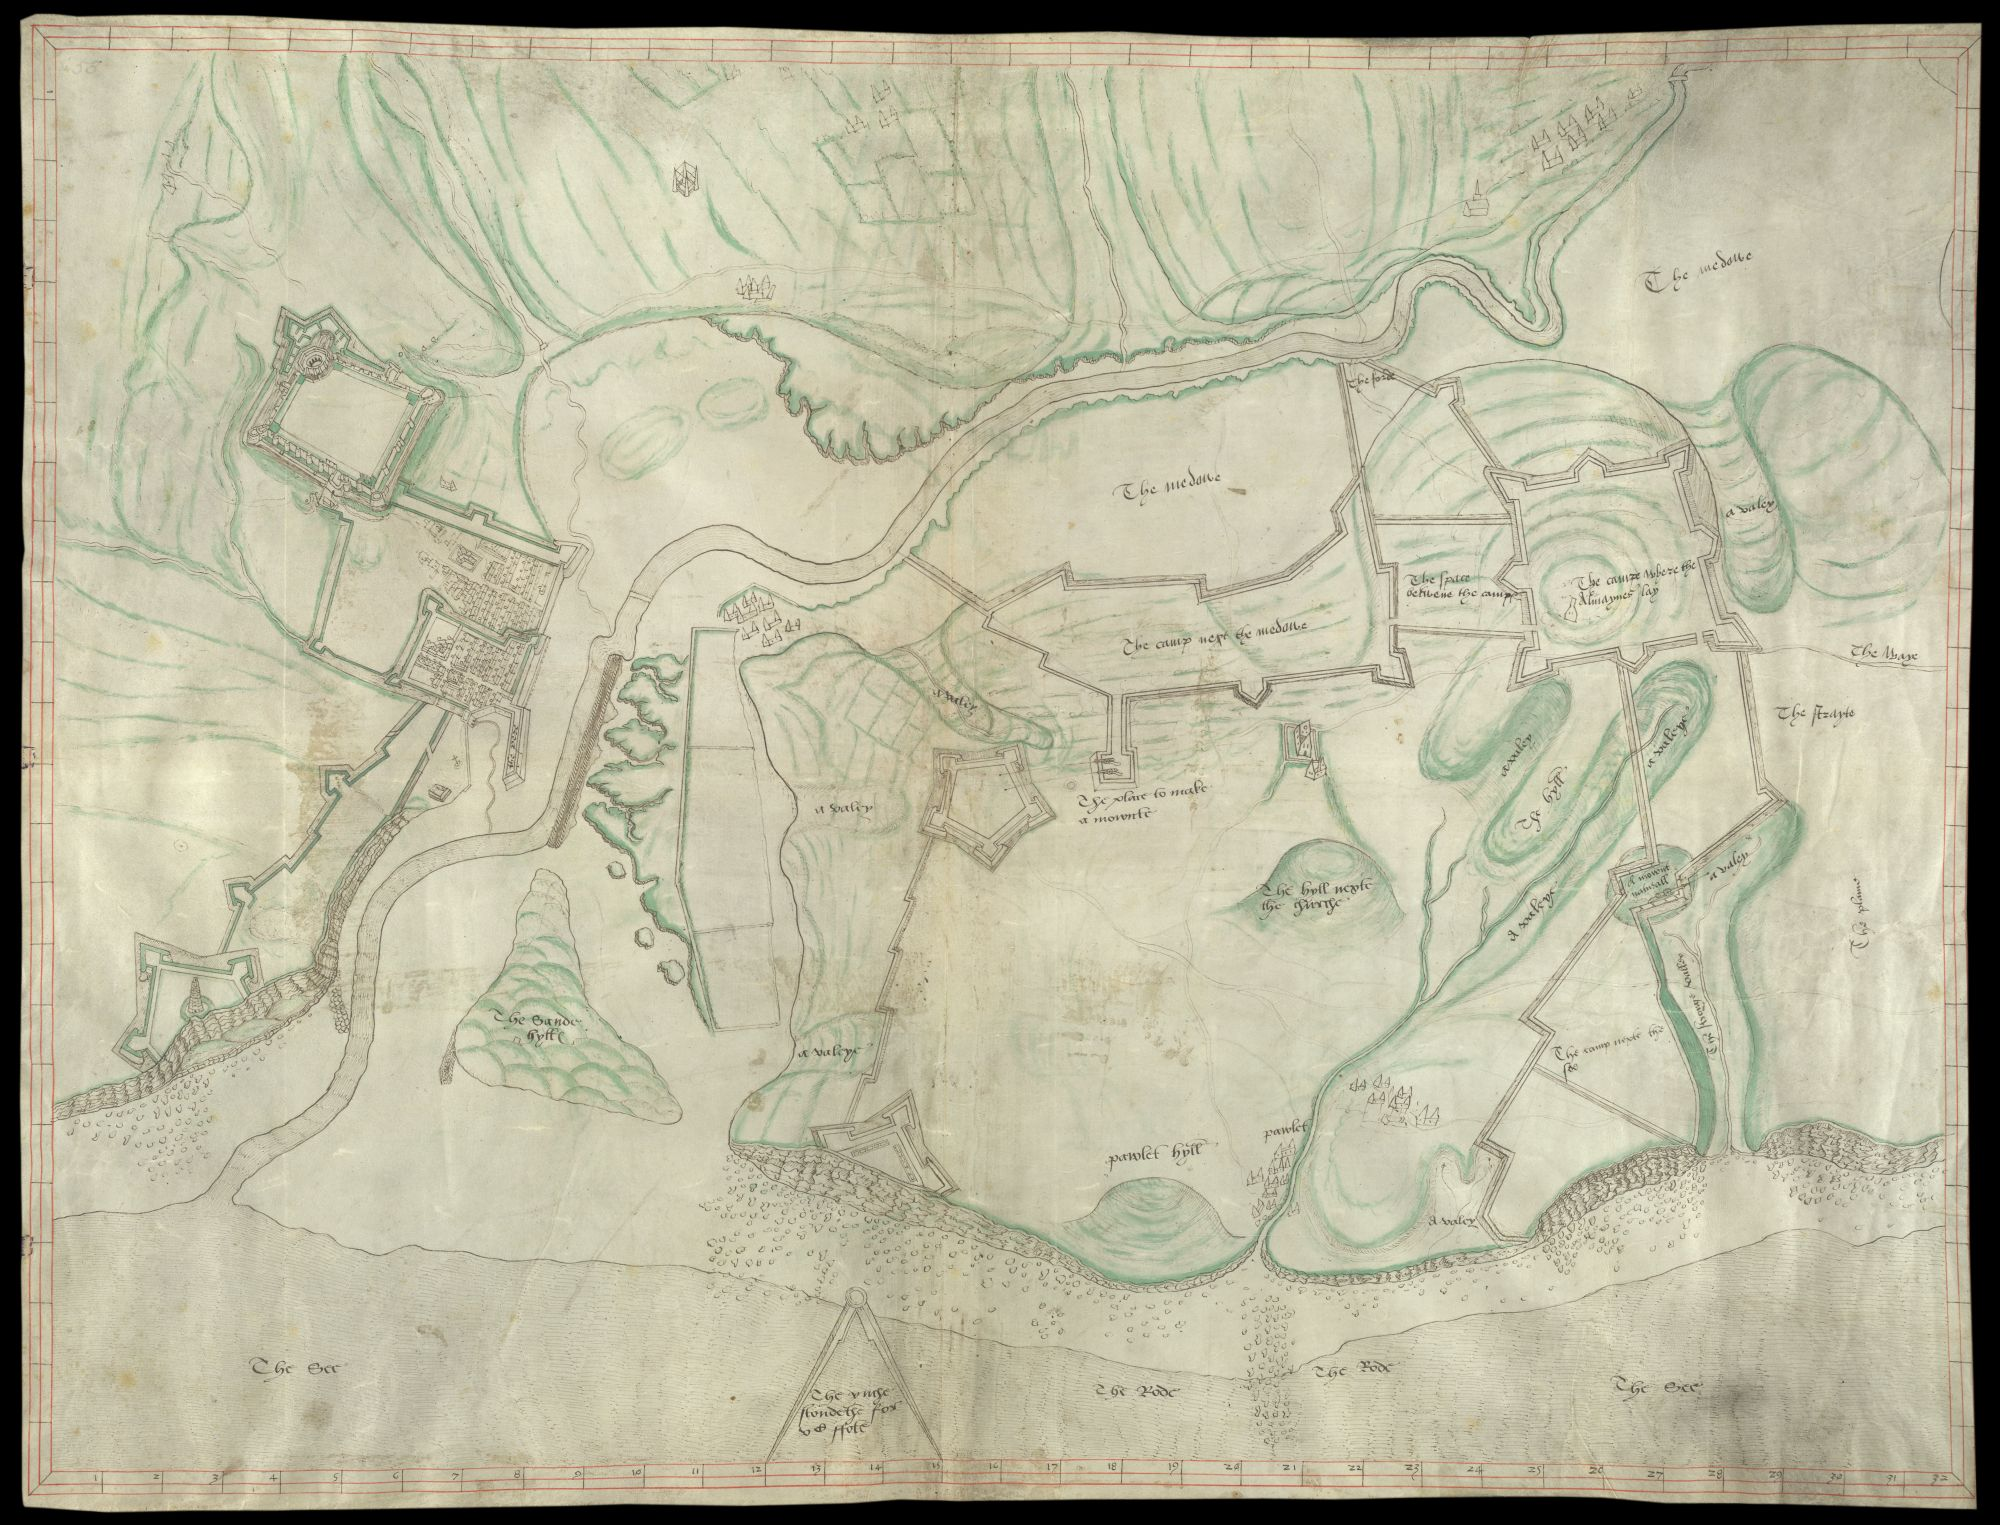 This plan shows fortifications in Boulogne and its environs and is thought to date from 1546